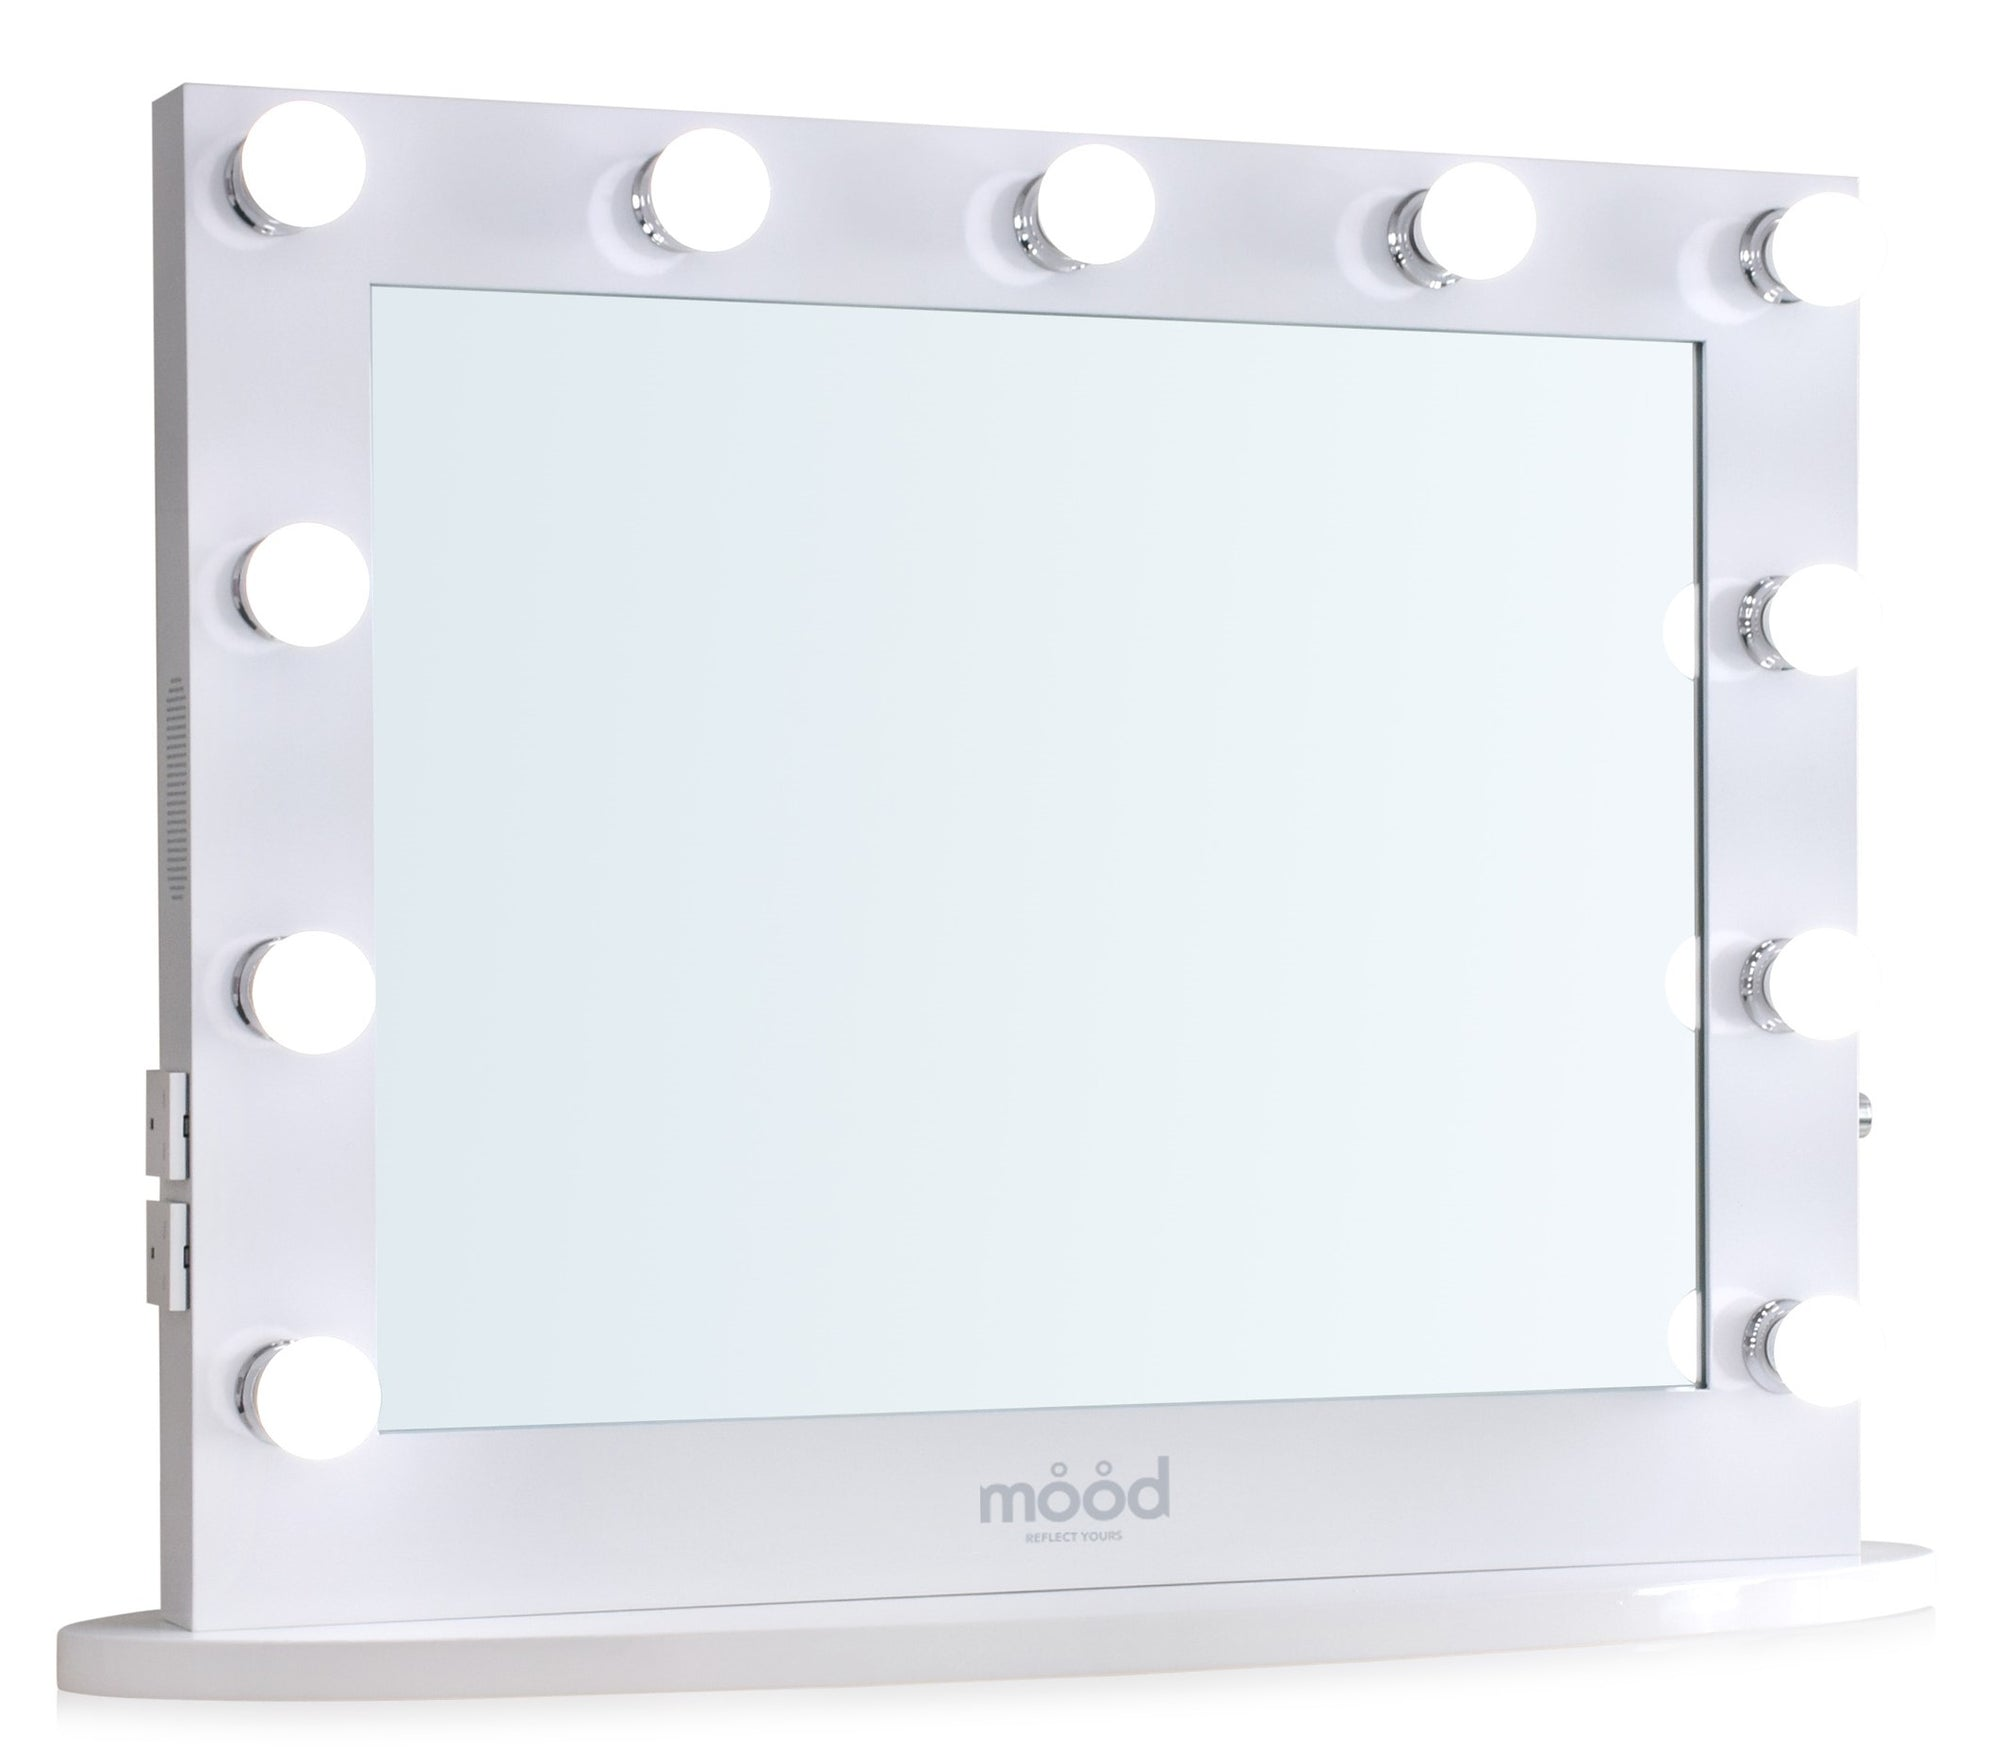 Hollywood vanity mirror - Mood Living